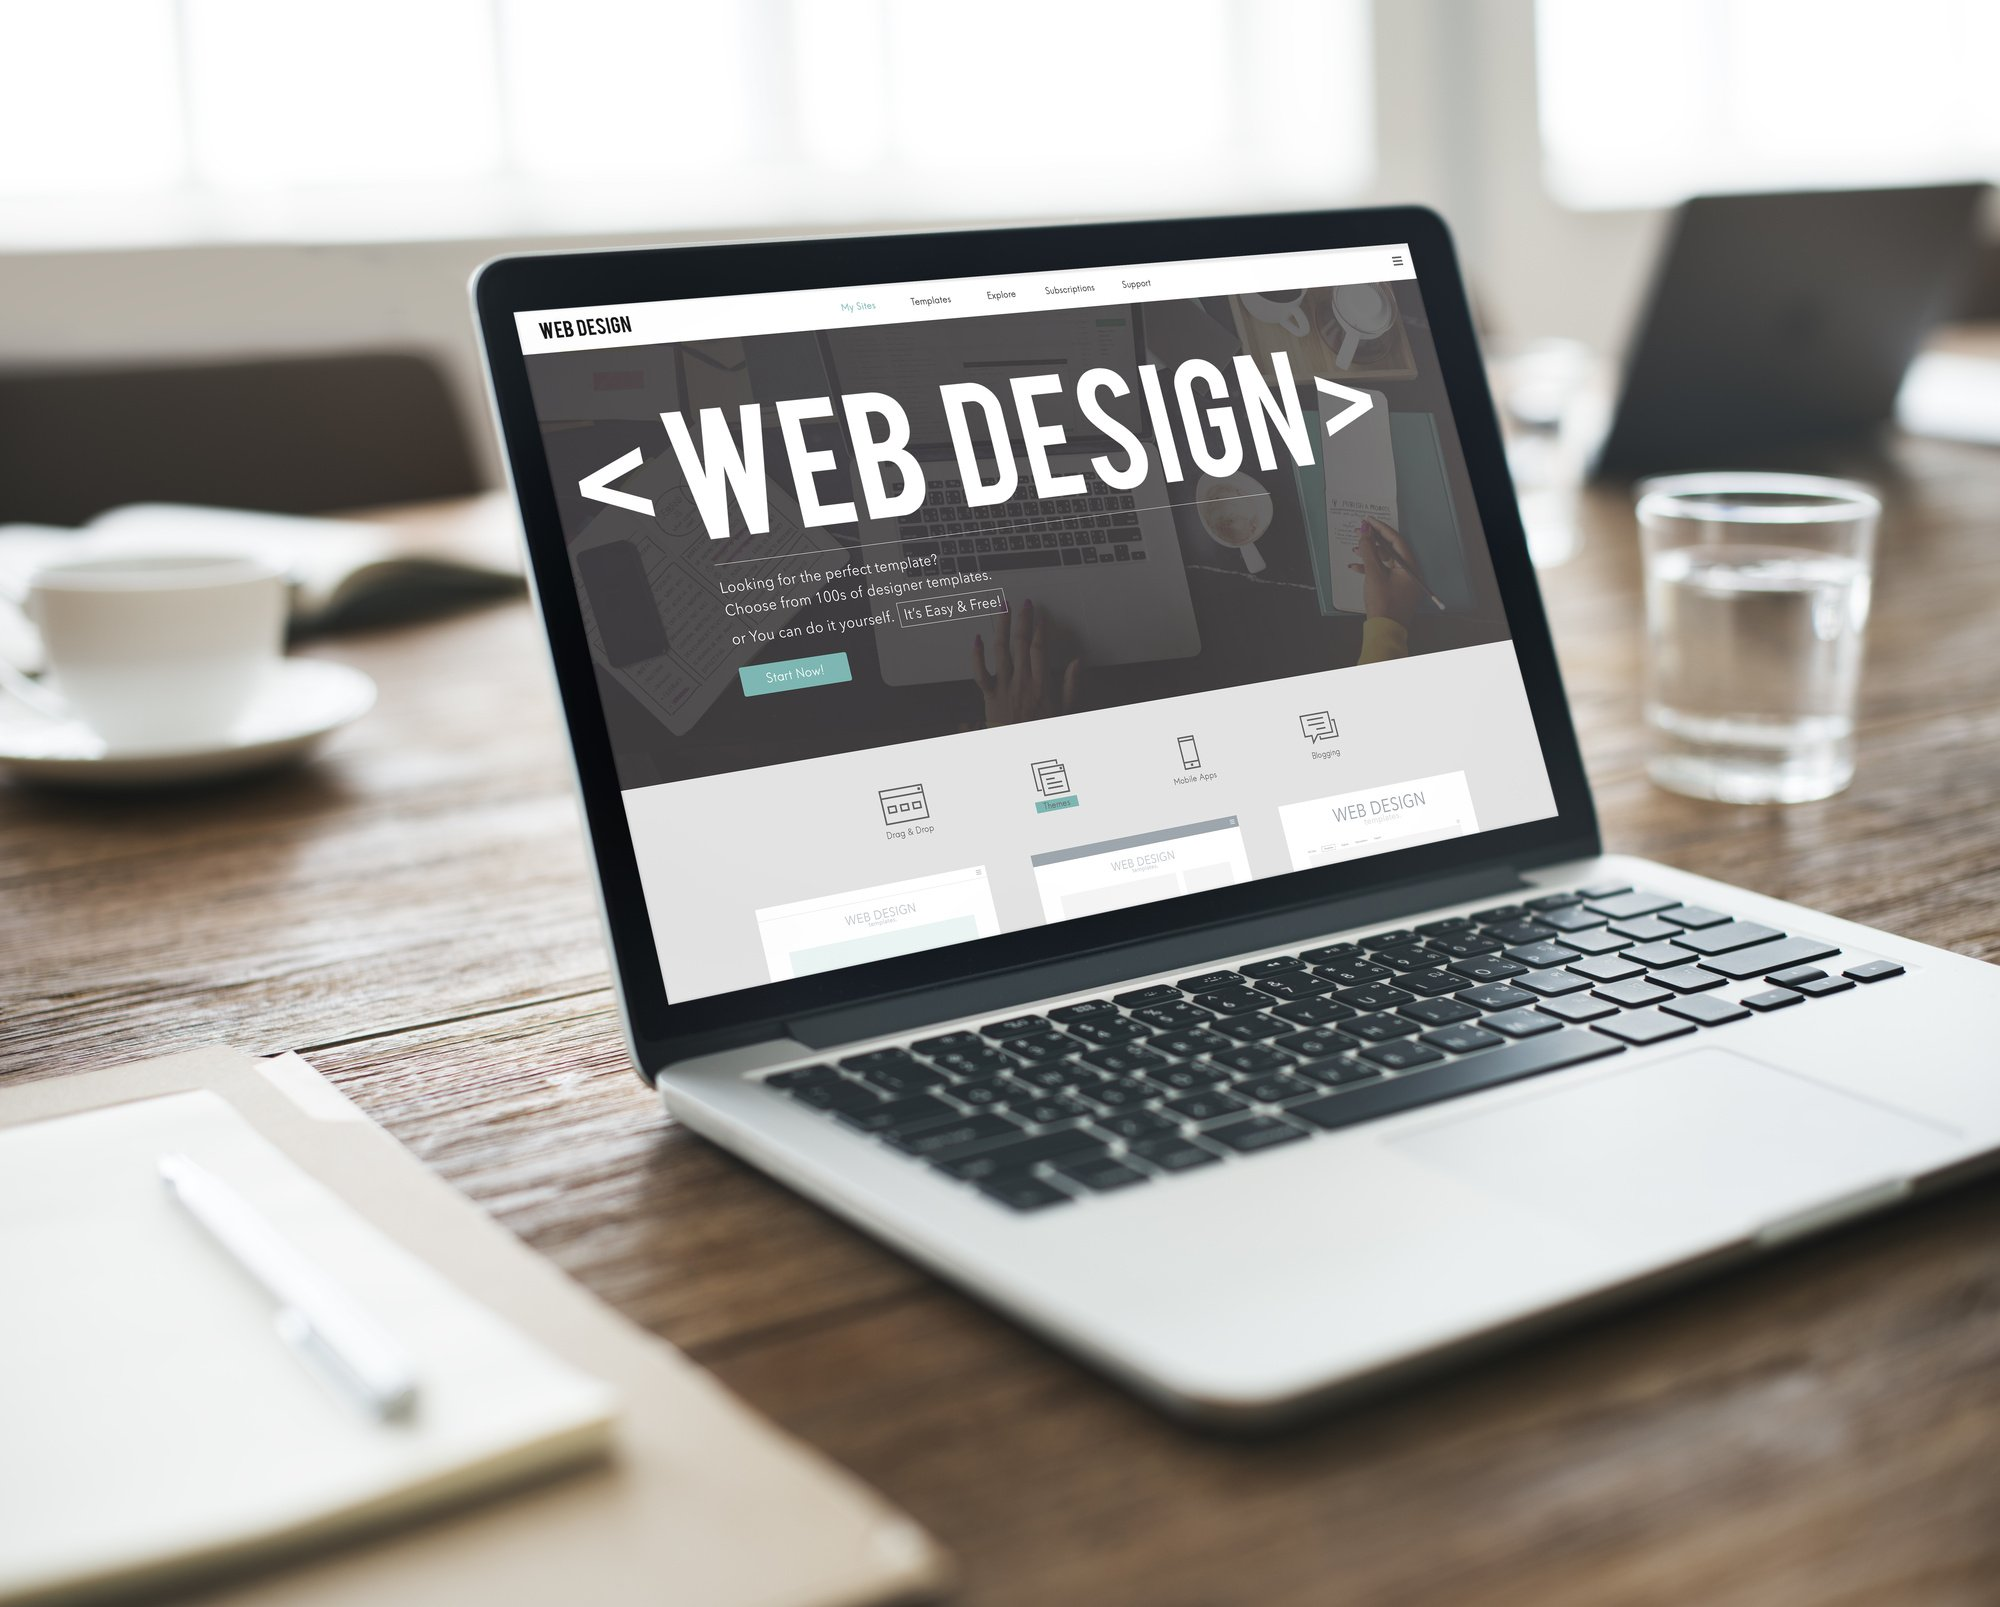 design trends for websites mockup on a laptop